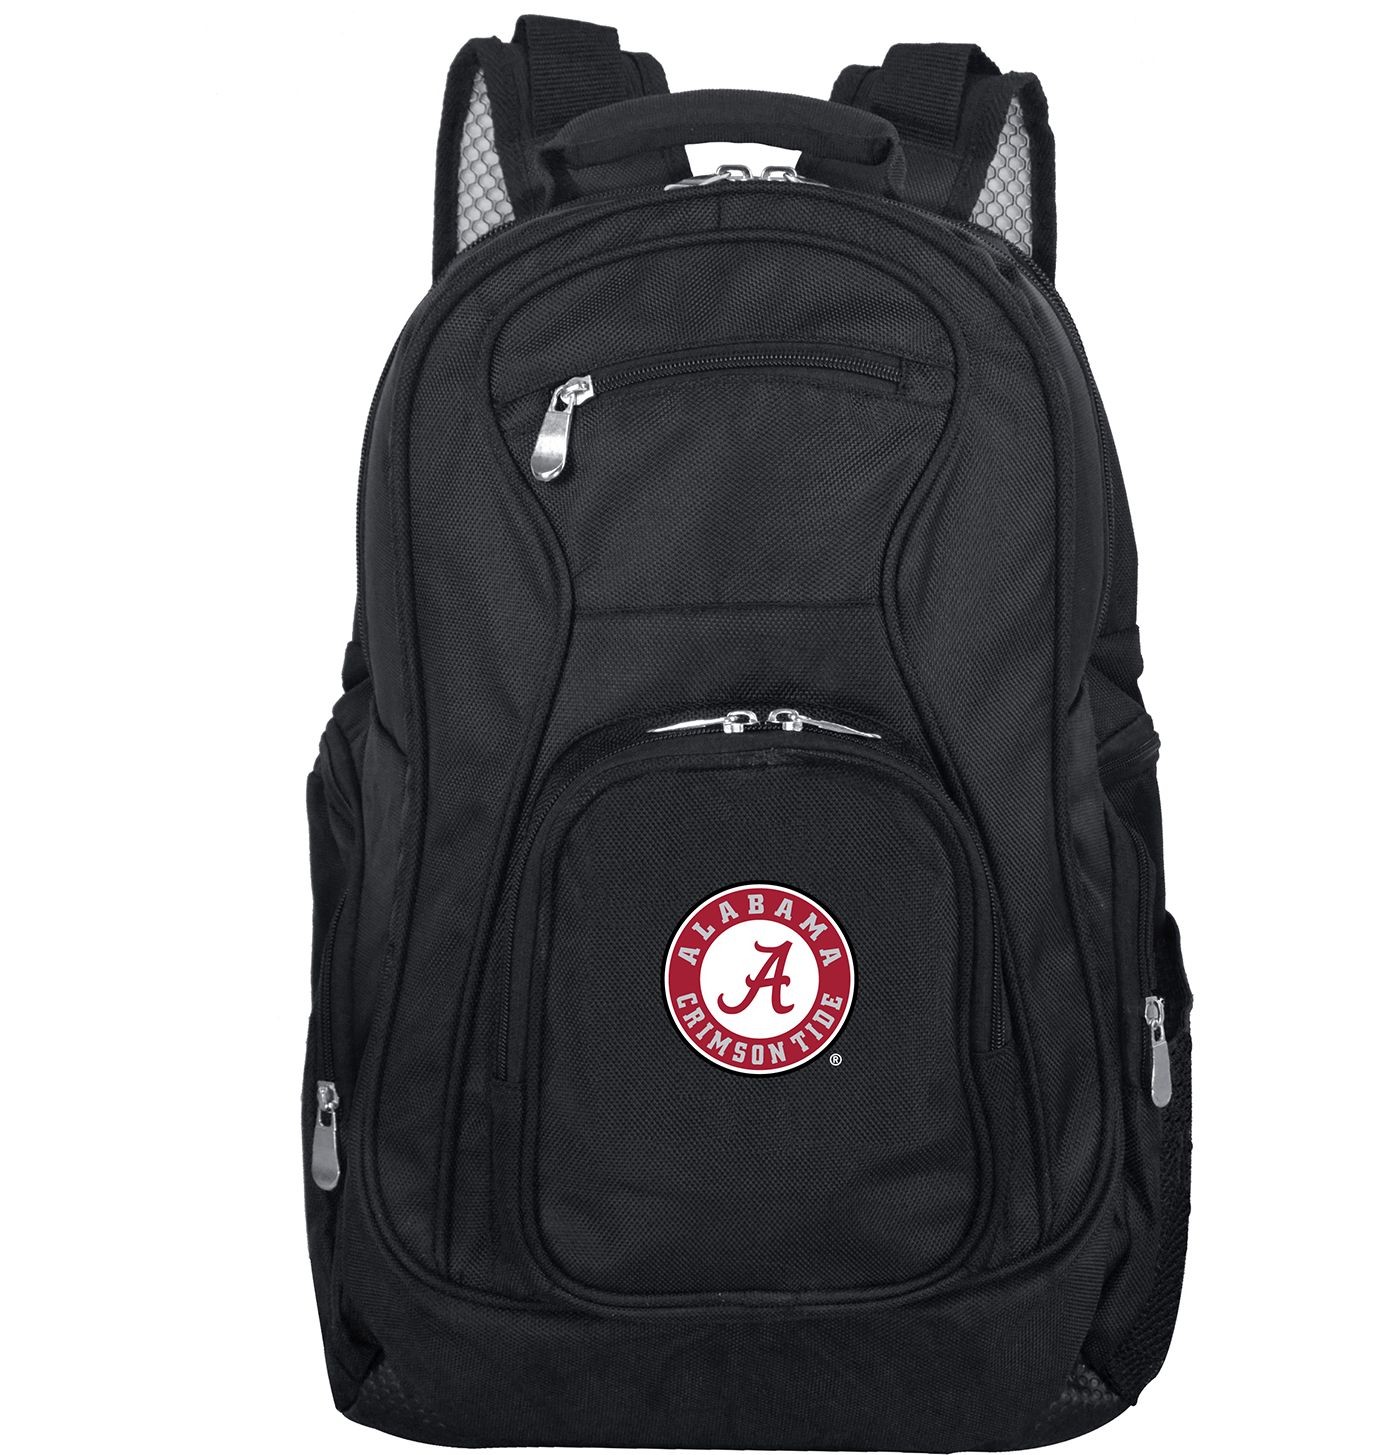 Mojo Alabama Crimson Tide Laptop Backpack